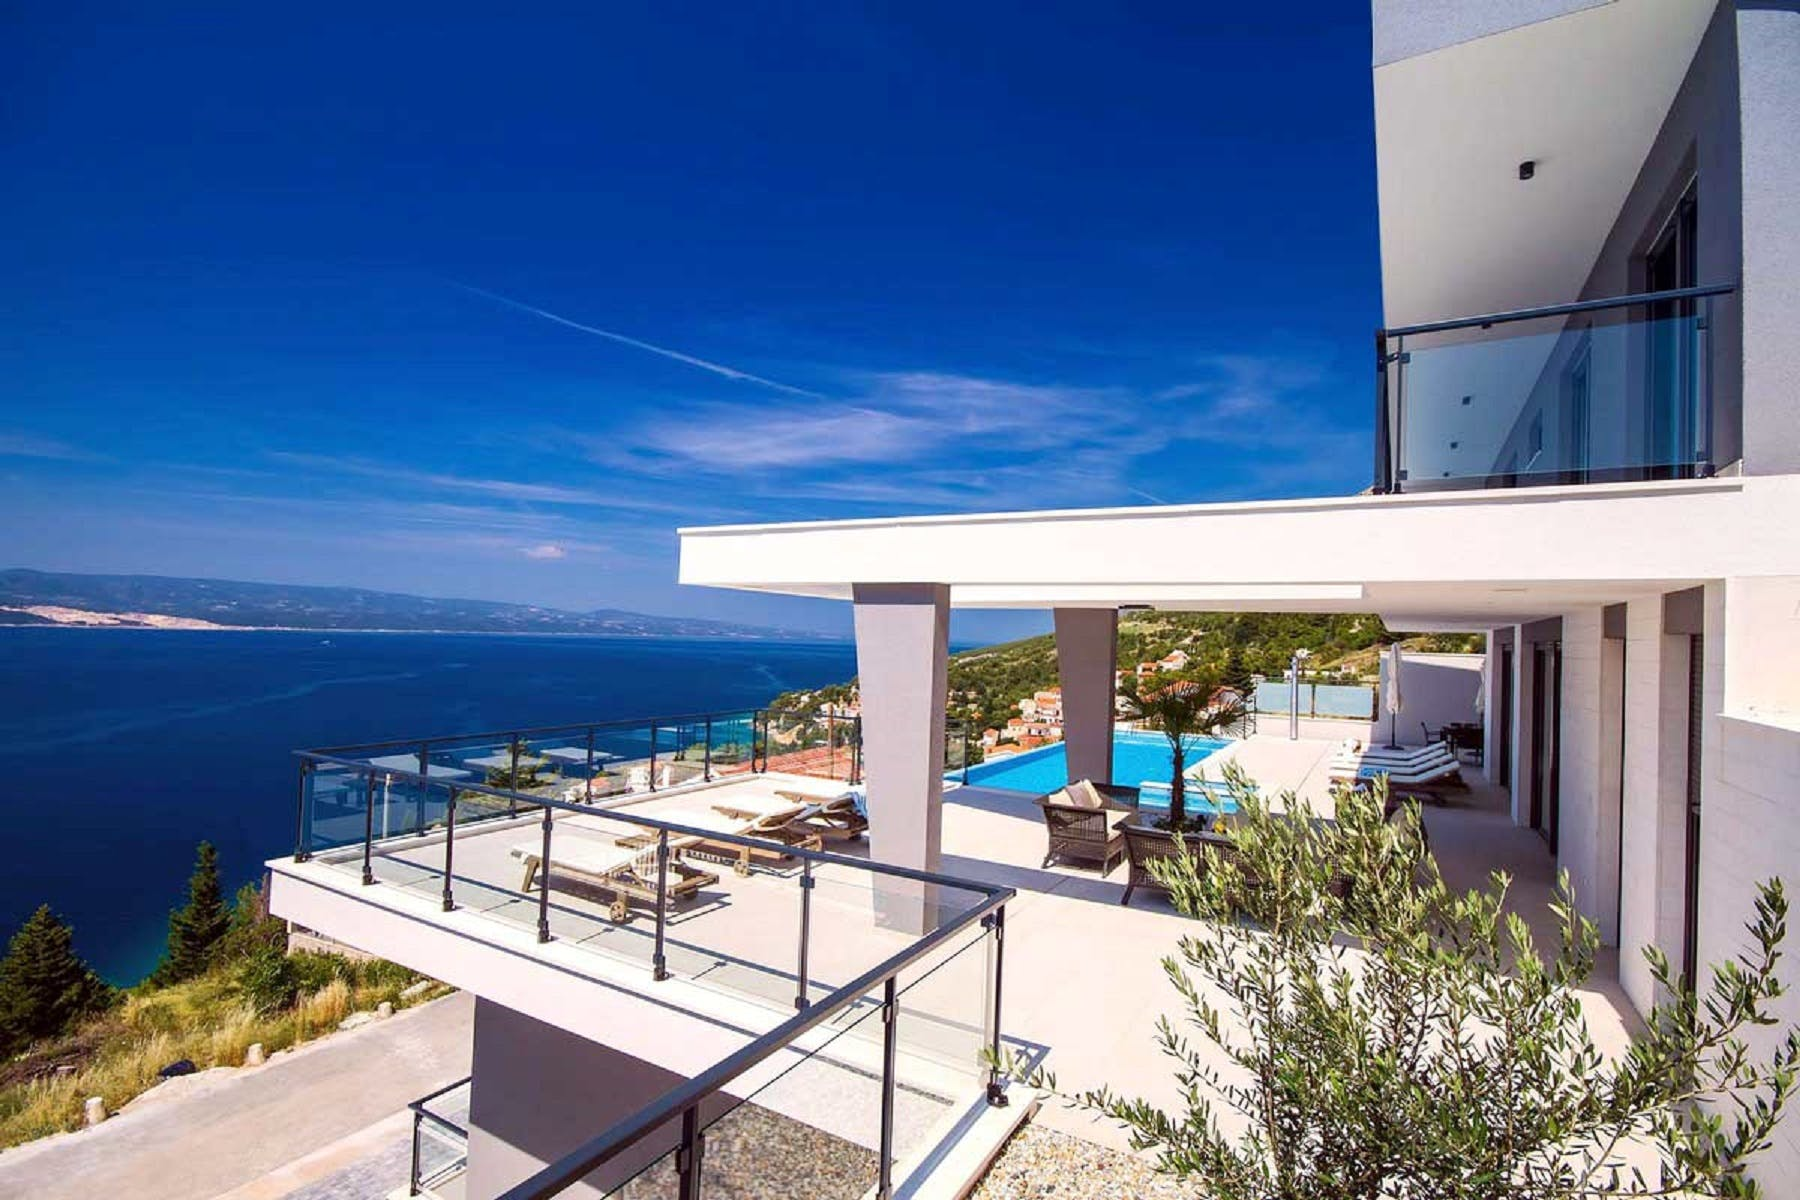 Terrace with an amazing seaview